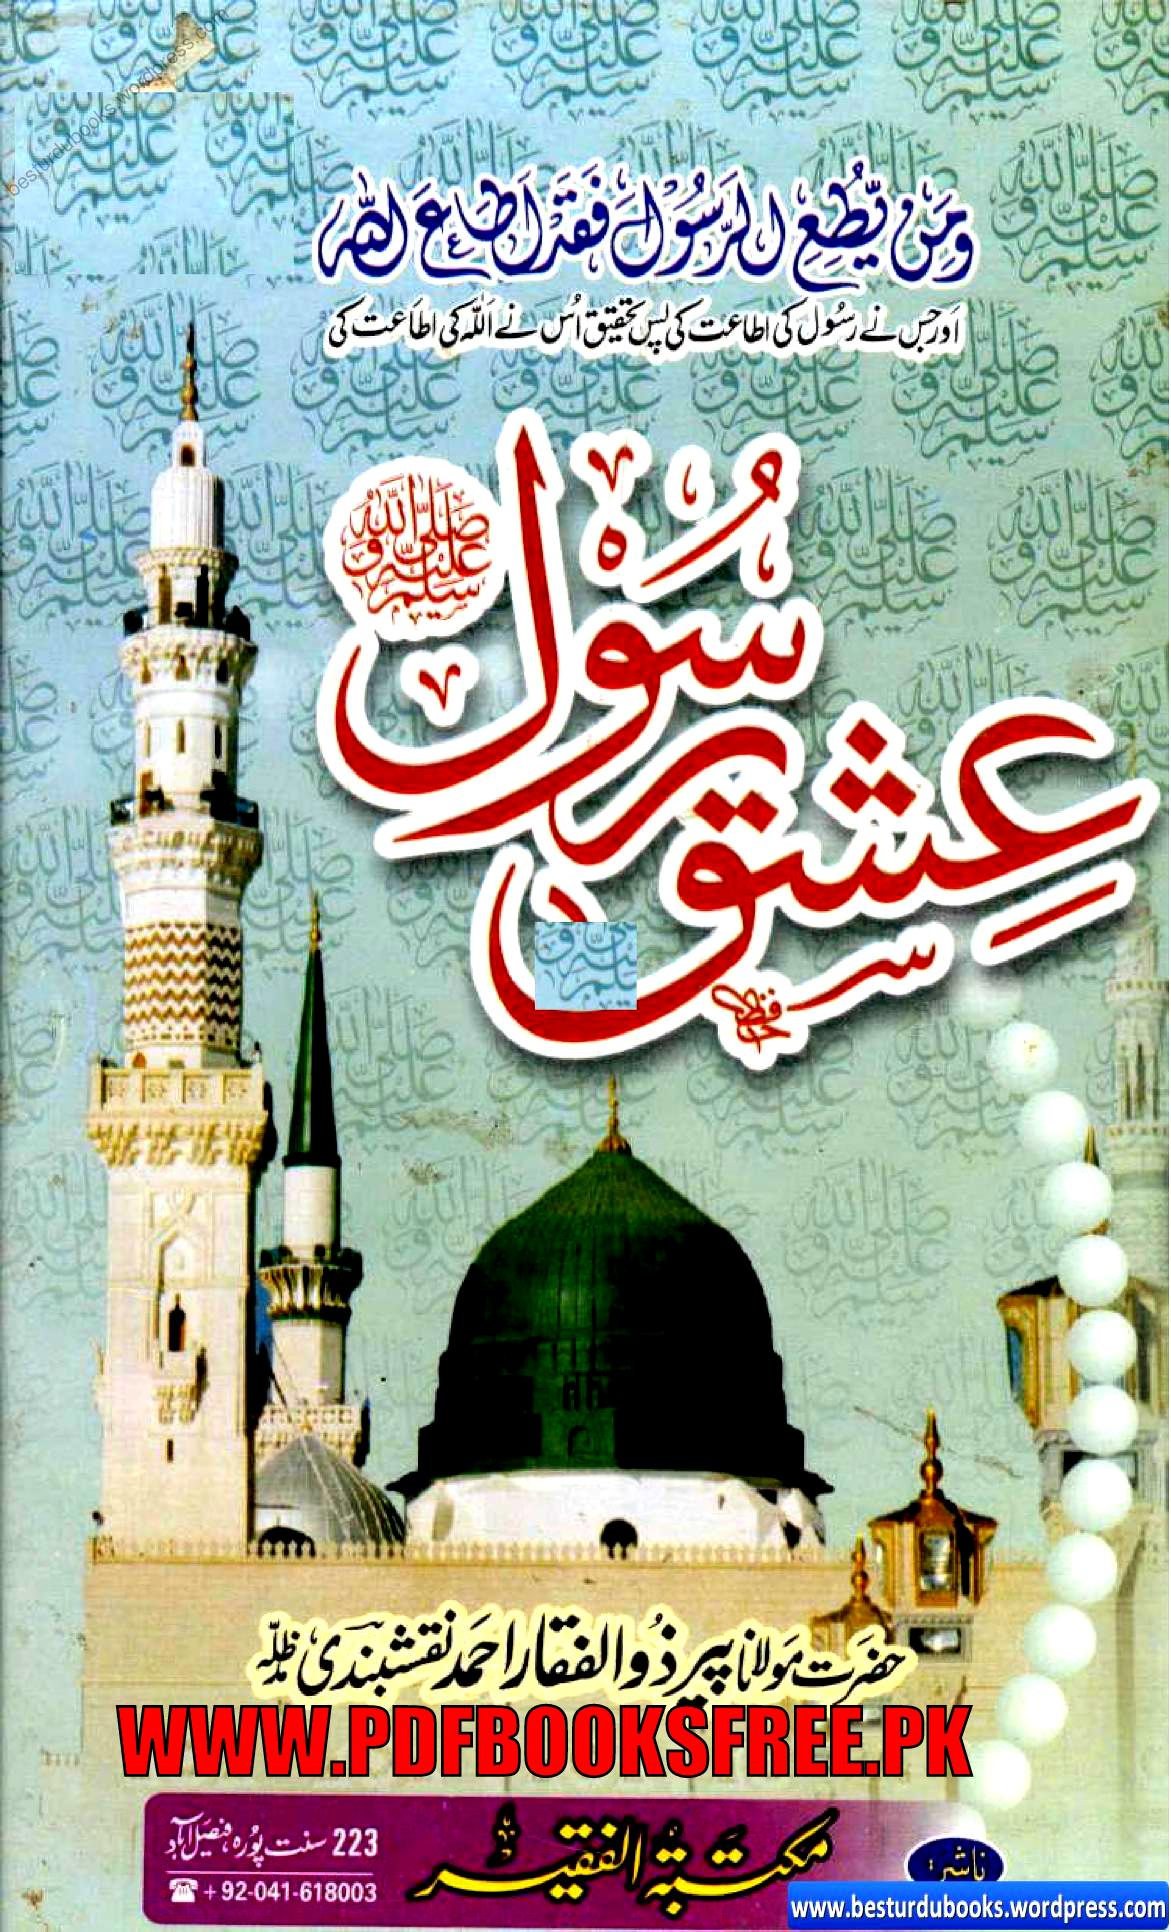 peer zulfiqar naqshbandi books in urdu pdf download